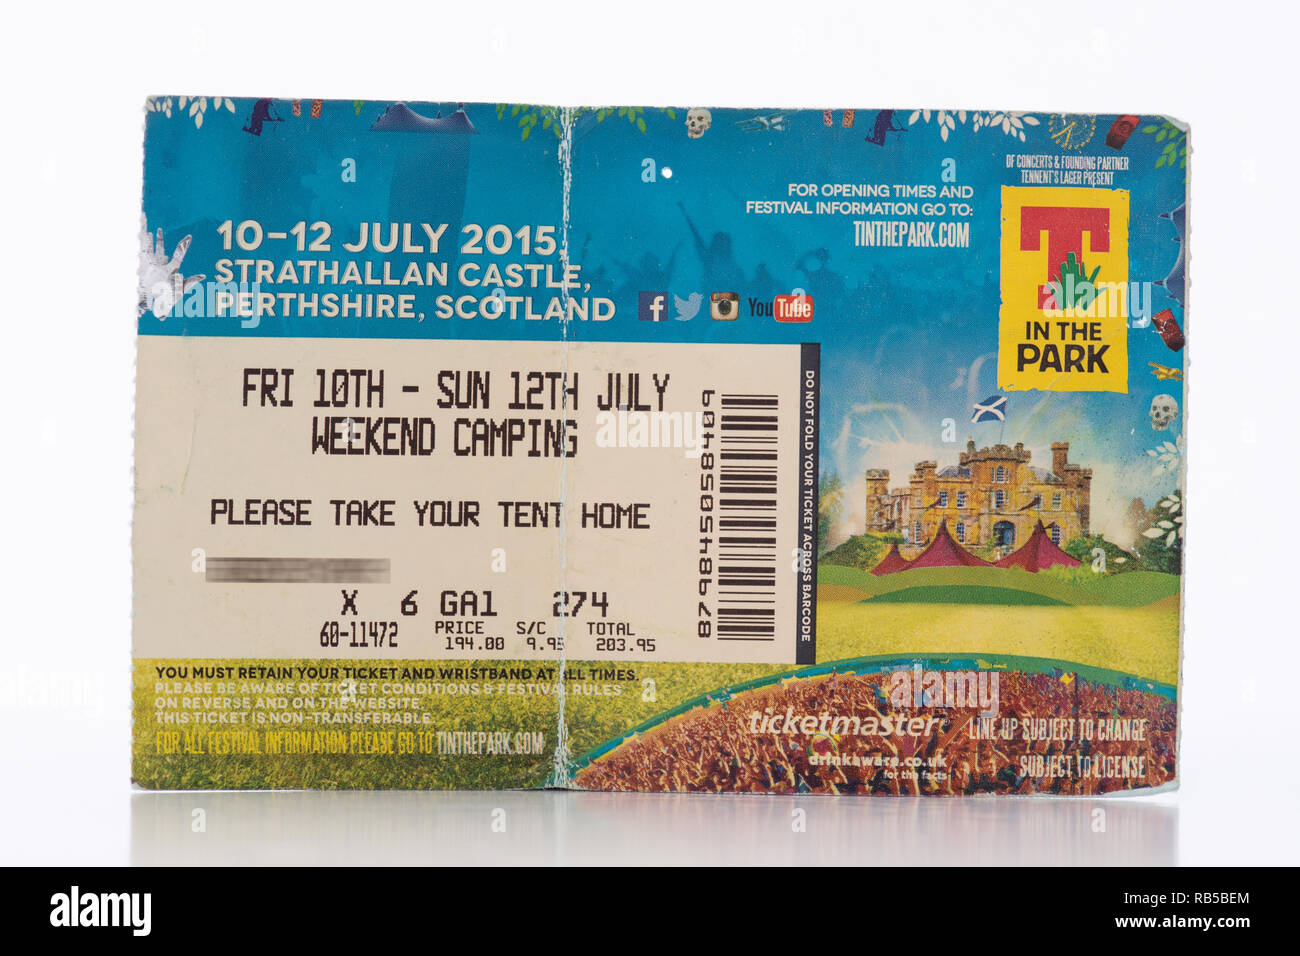 T in the Park ticket 2015 Strathallan Castle, Scotland, UK (ticket holders name obscured for privacy) - Stock Image